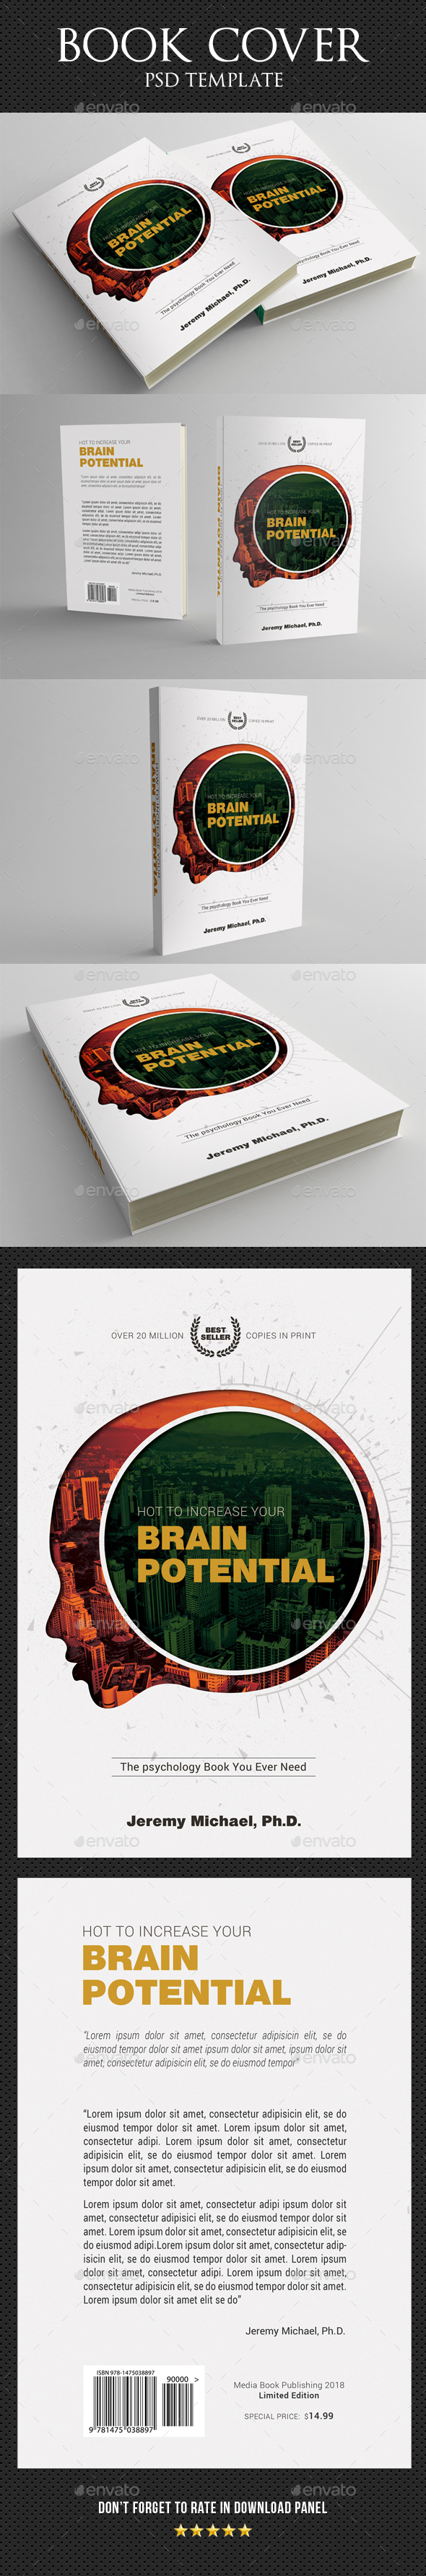 Book Cover Template 48 - Miscellaneous Print Templates